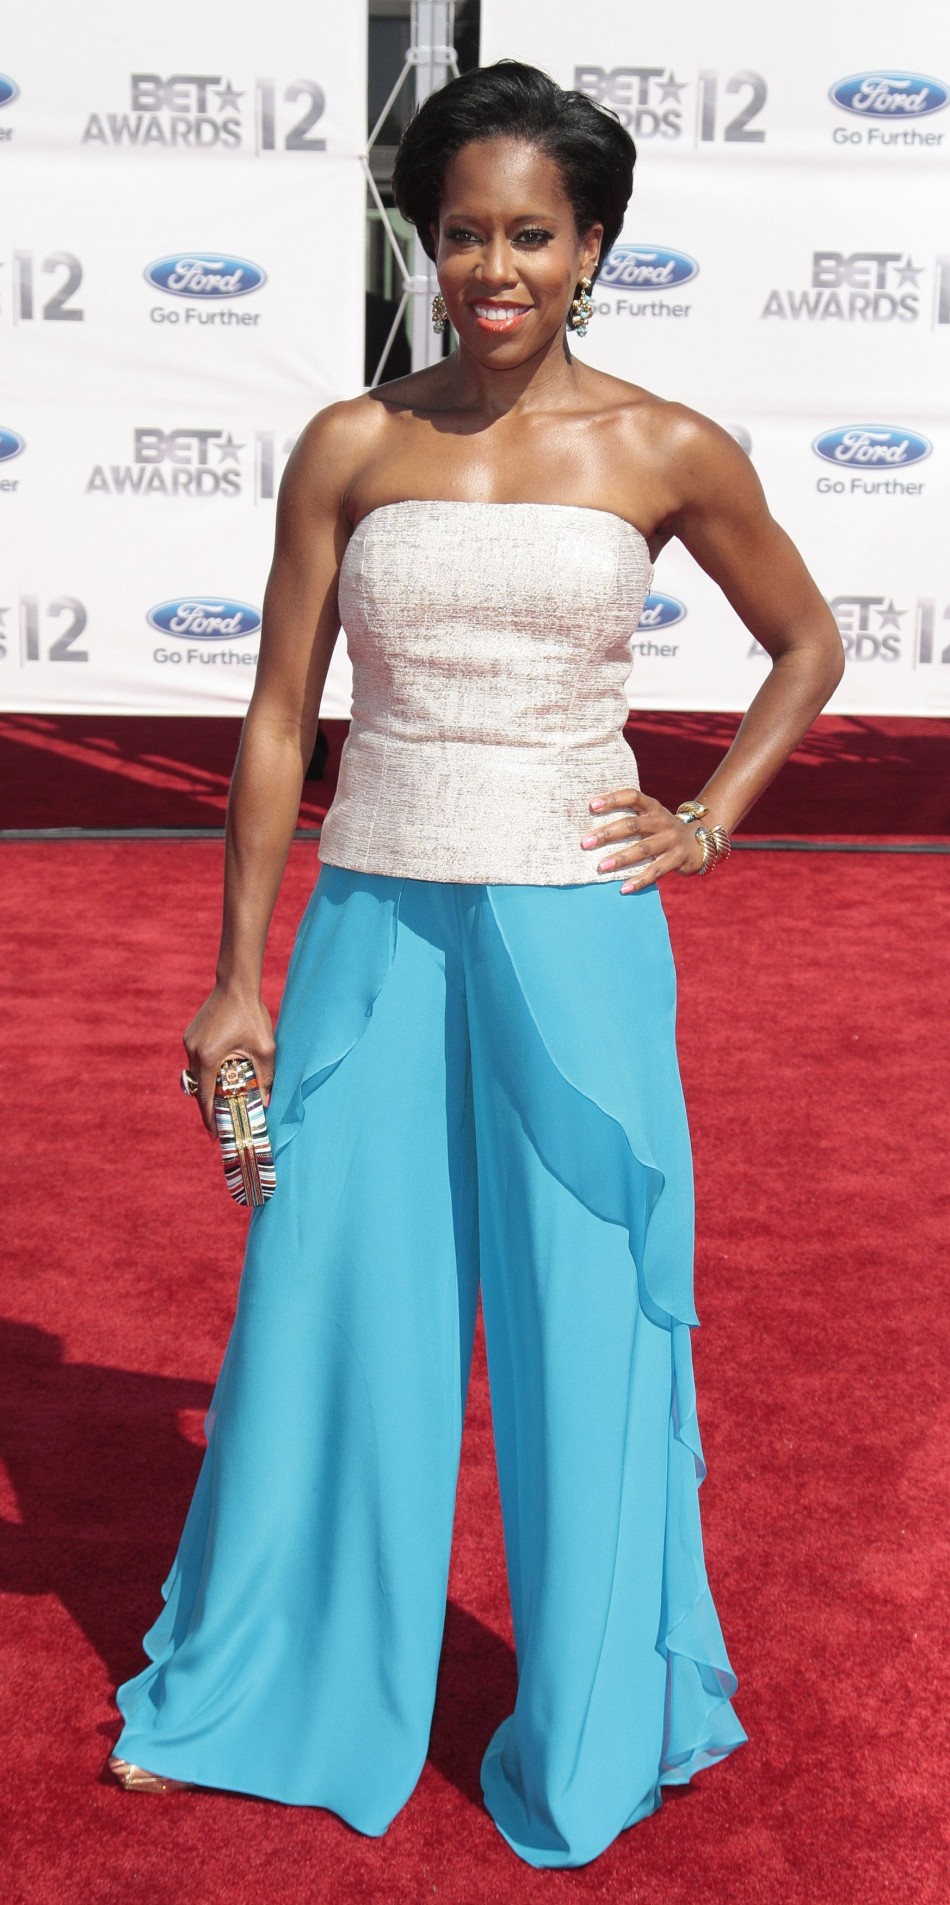 Regina King poses at the 2012 BET Awards in Los Angeles